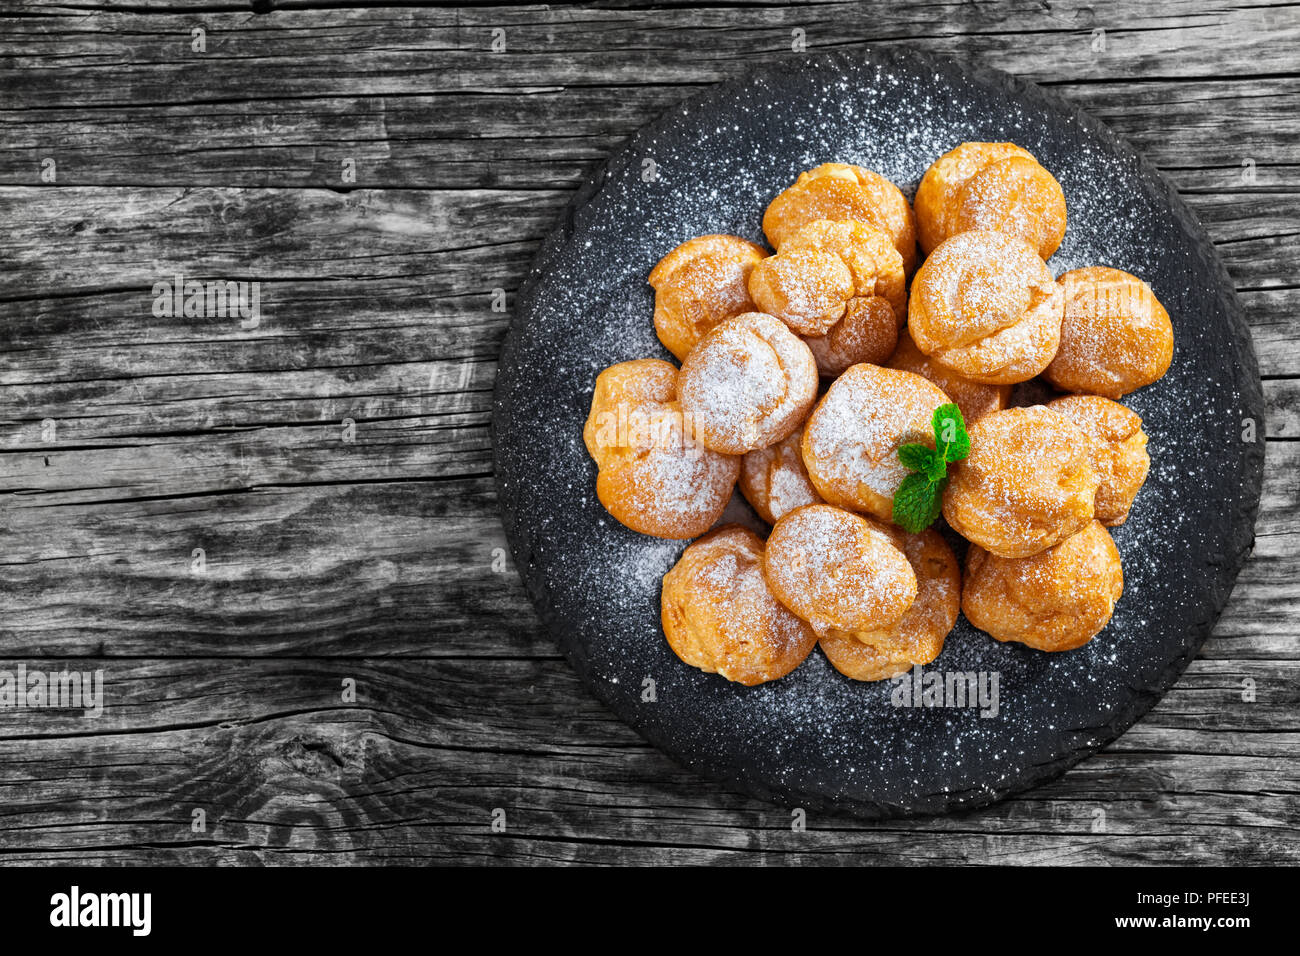 Delicious profiteroles filled with cream on slate plate,  dusting of powdered sugar, on old dark wooden table, view from above - Stock Image